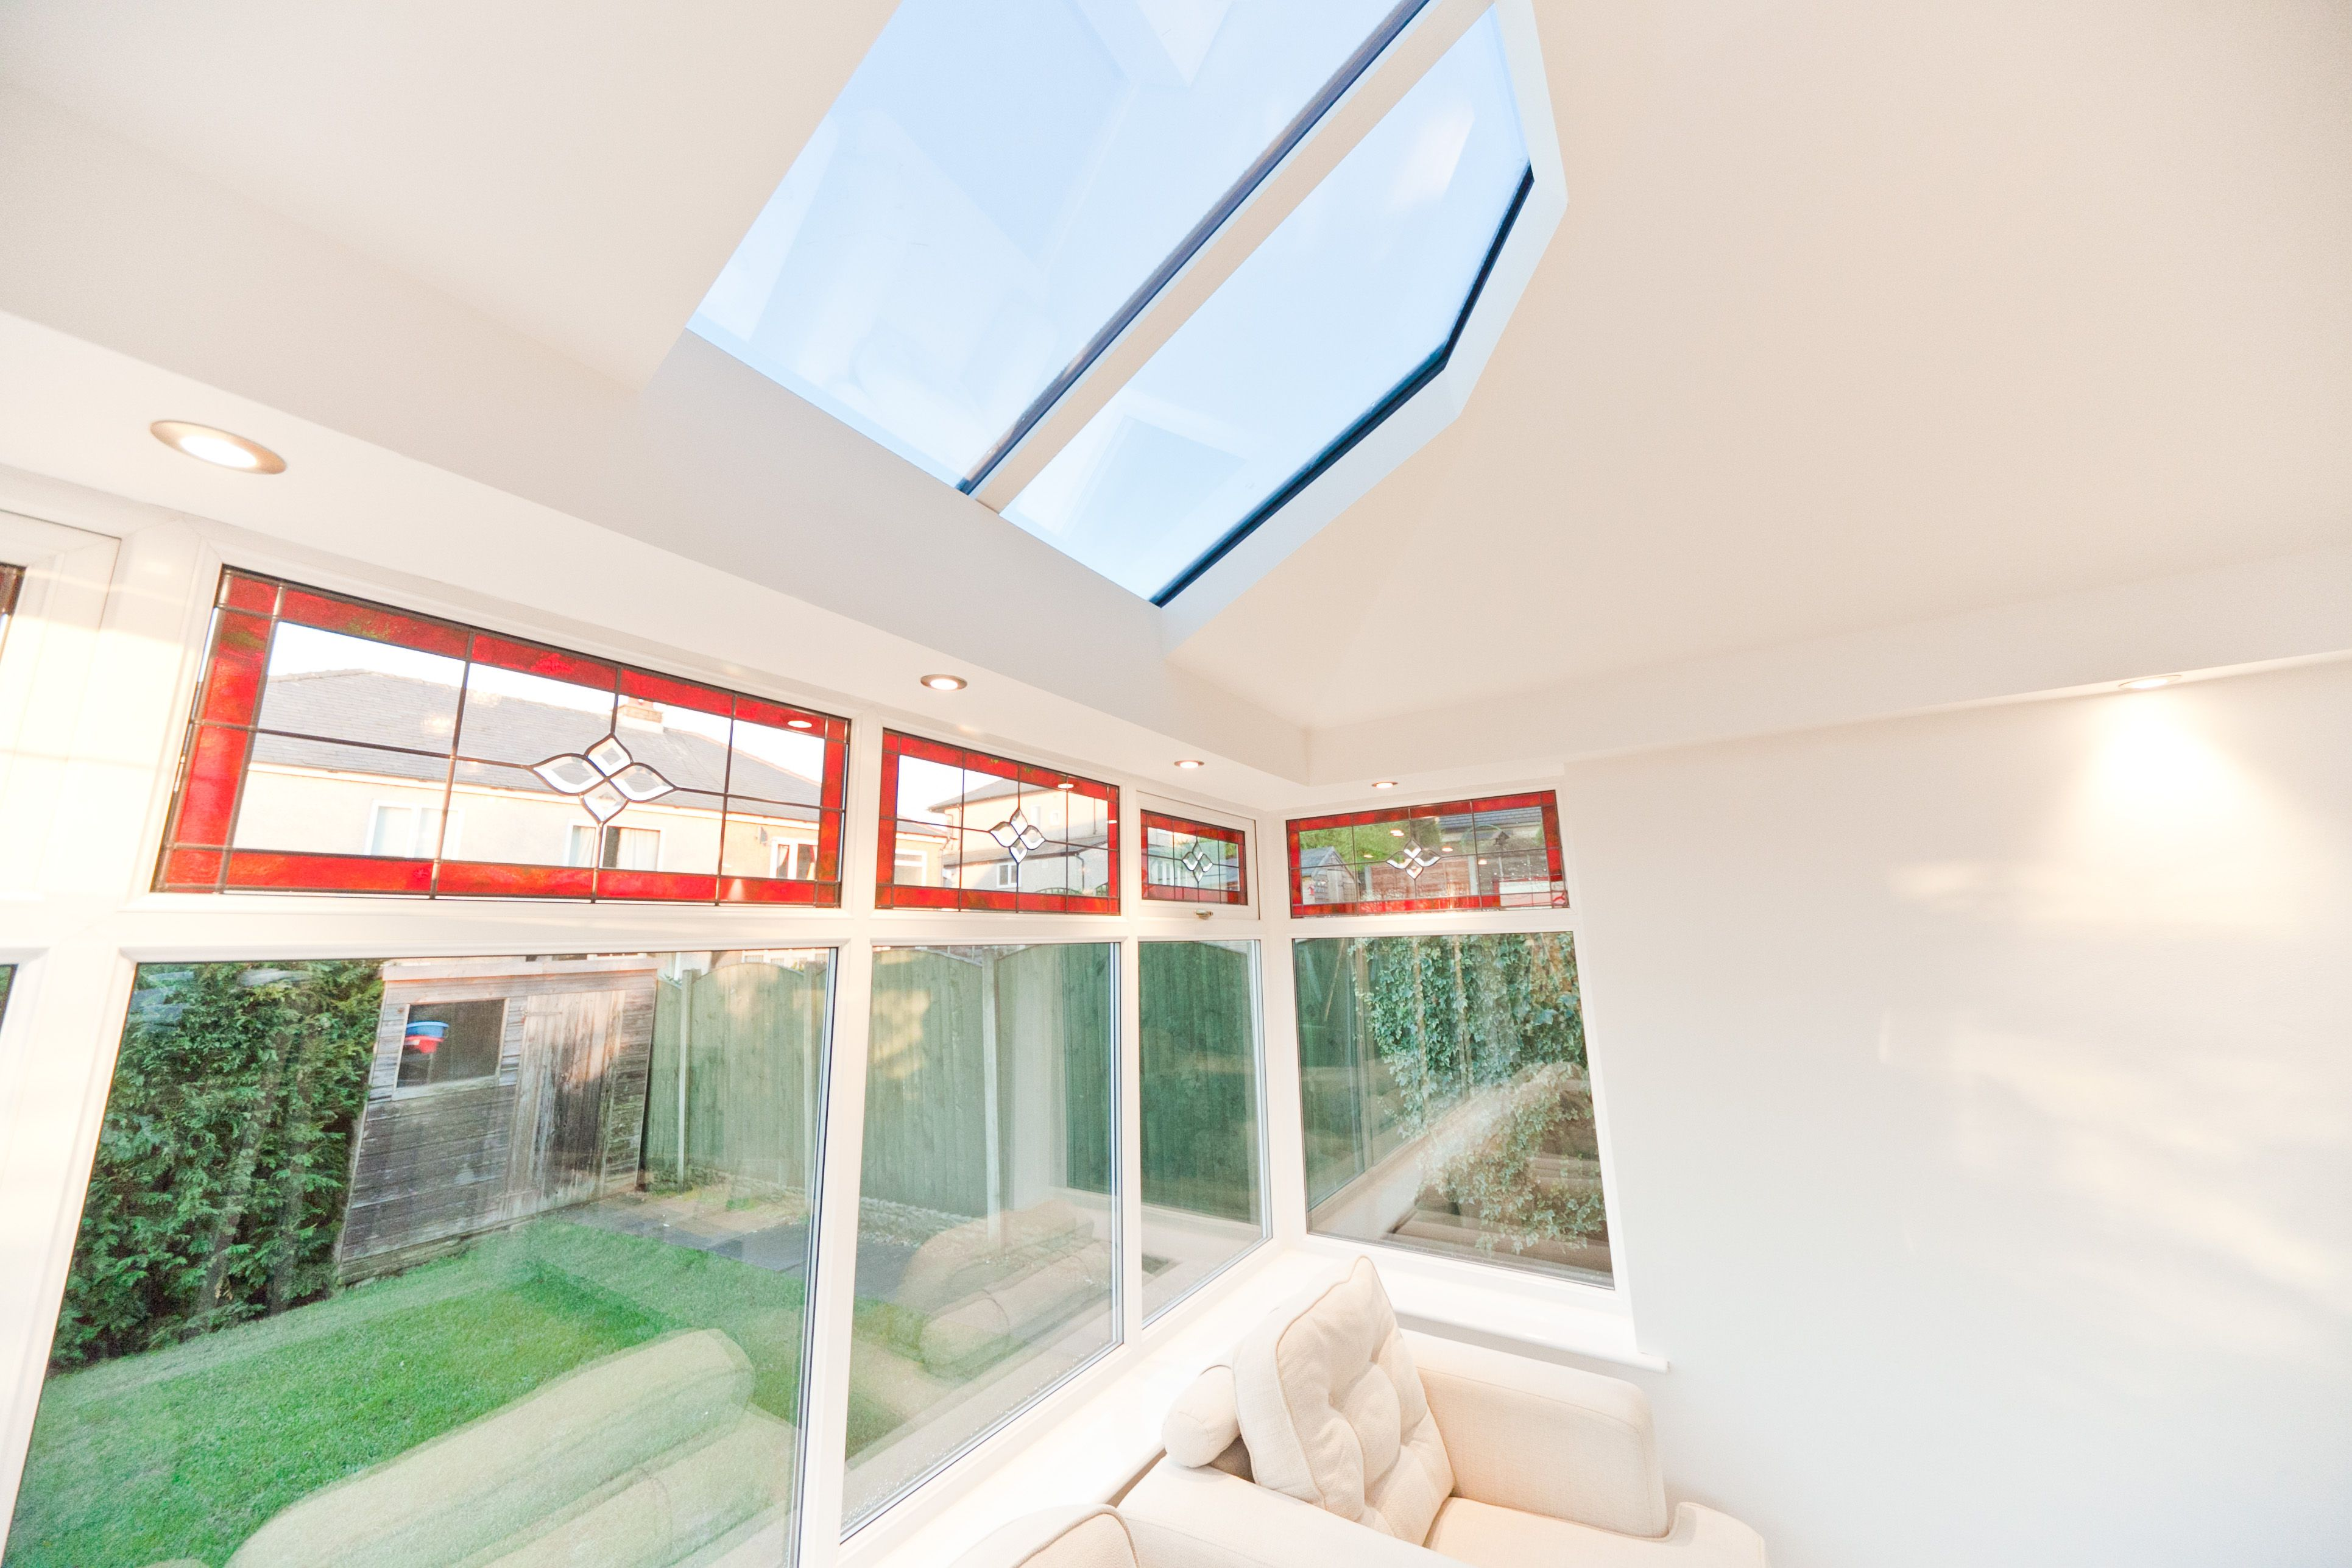 New Award Winning Replacement Livinroof Roofing Systems Here At Marton Windows A Fantastic Energy Efficient Soluti Roofing Systems Composite Door Upvc Windows